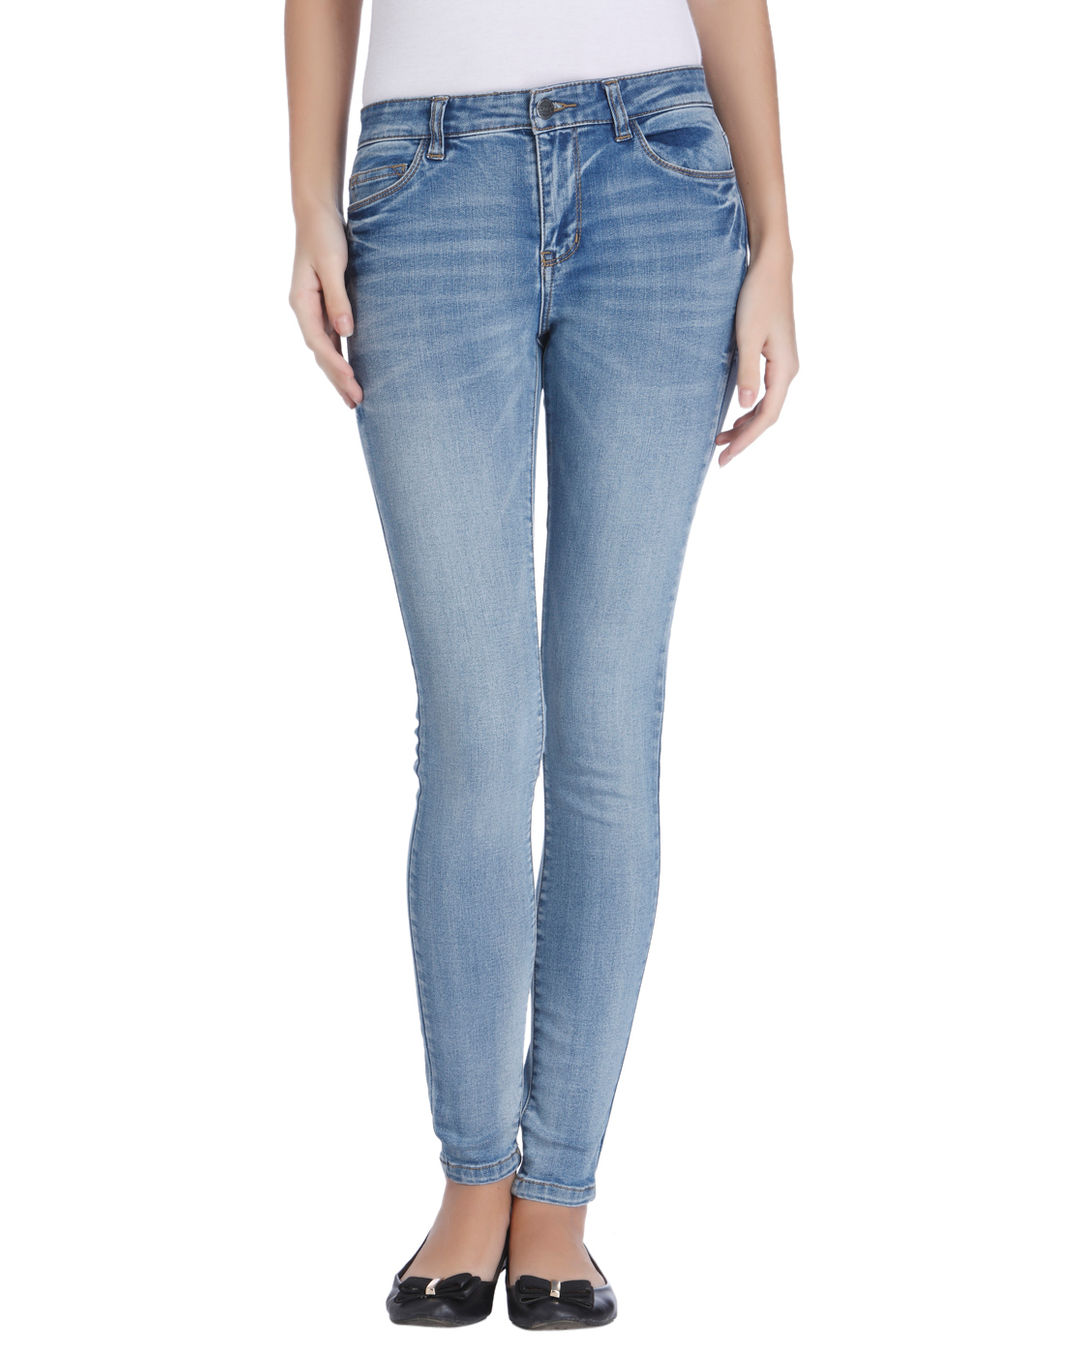 online store 2dea6 5f404 Buy ONLY Light Blue Skinny Jeans Online | ONLY